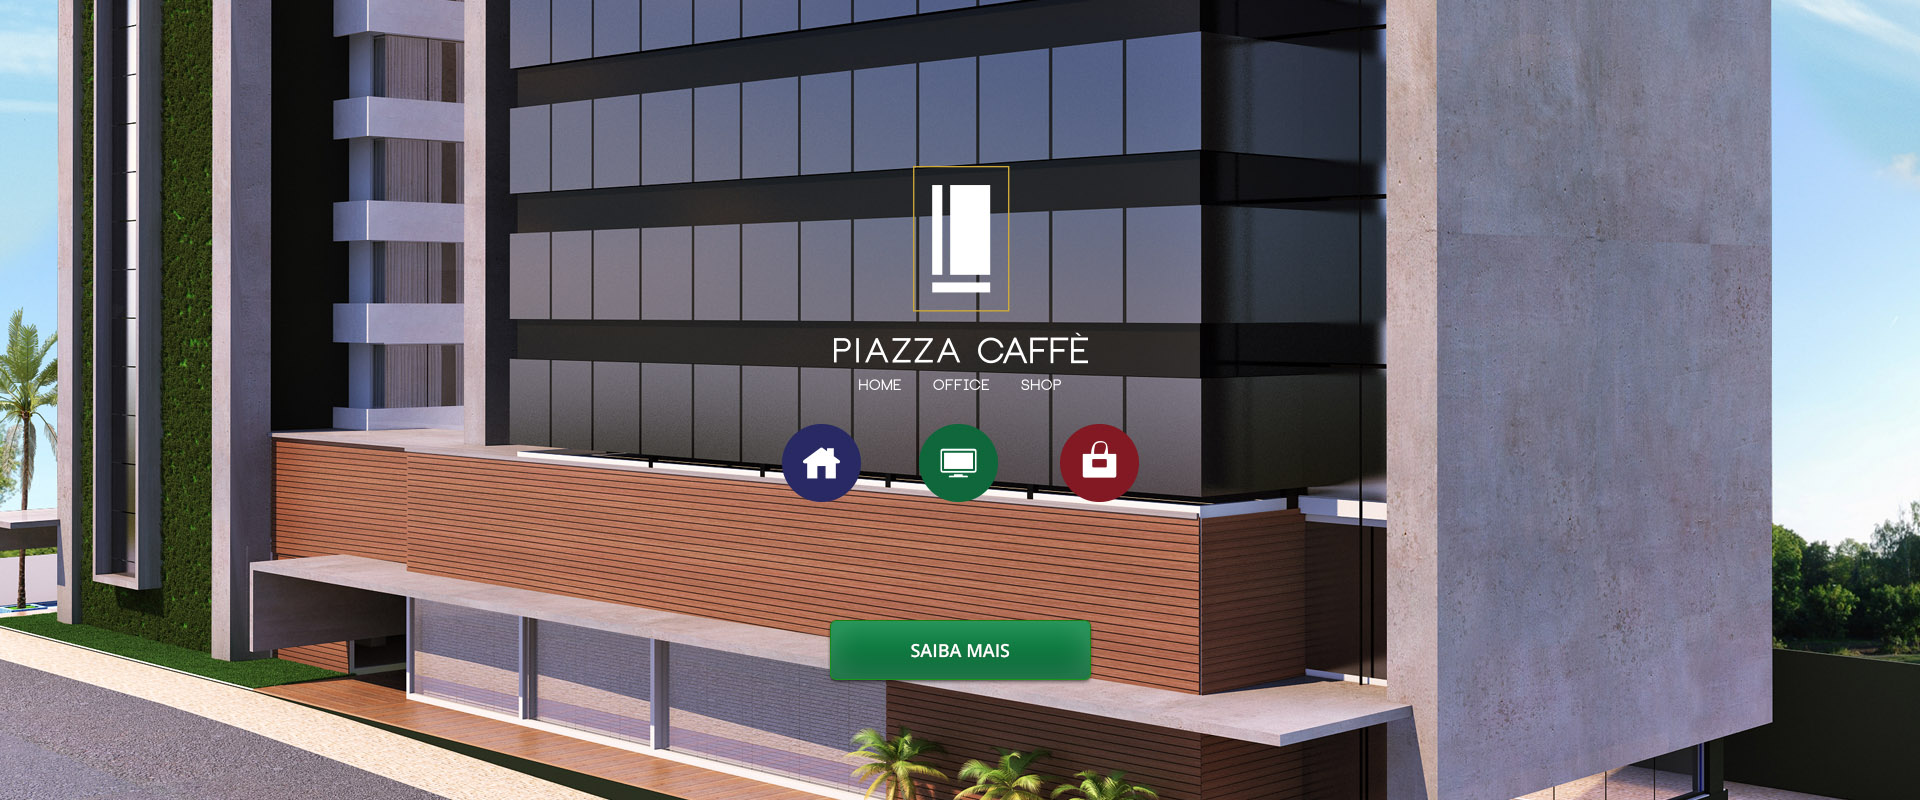 Banner-Piazza-Caffe